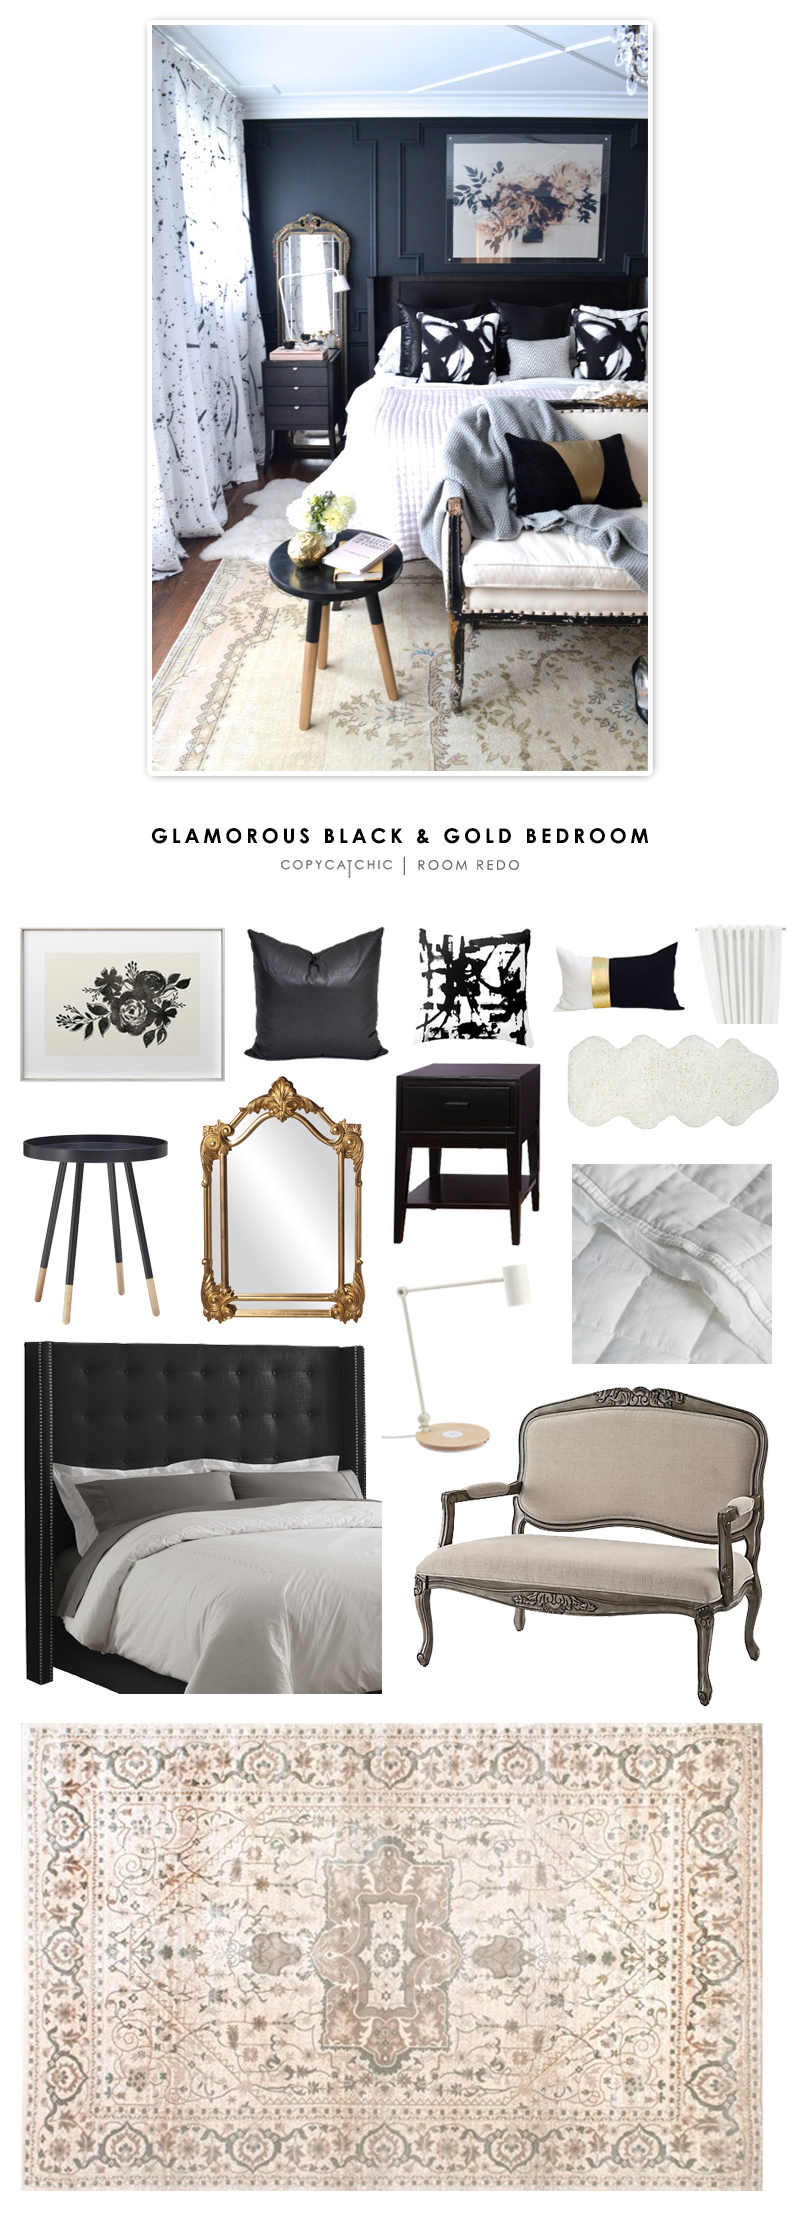 Copy Cat Chic Room Redo Glamorous Black And Gold Bedroom